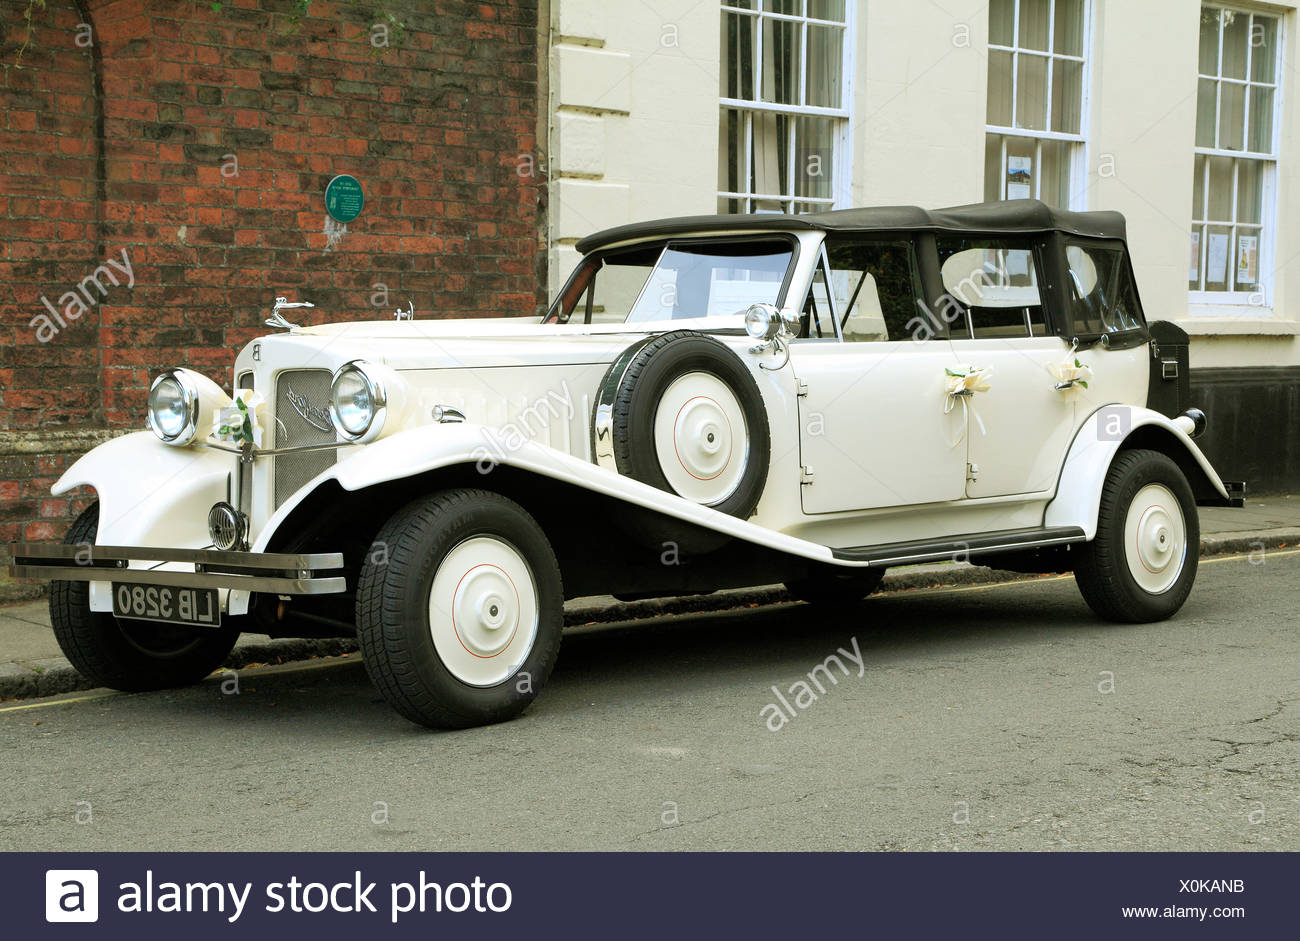 Beauford Car Stock Photos & Beauford Car Stock Images - Alamy